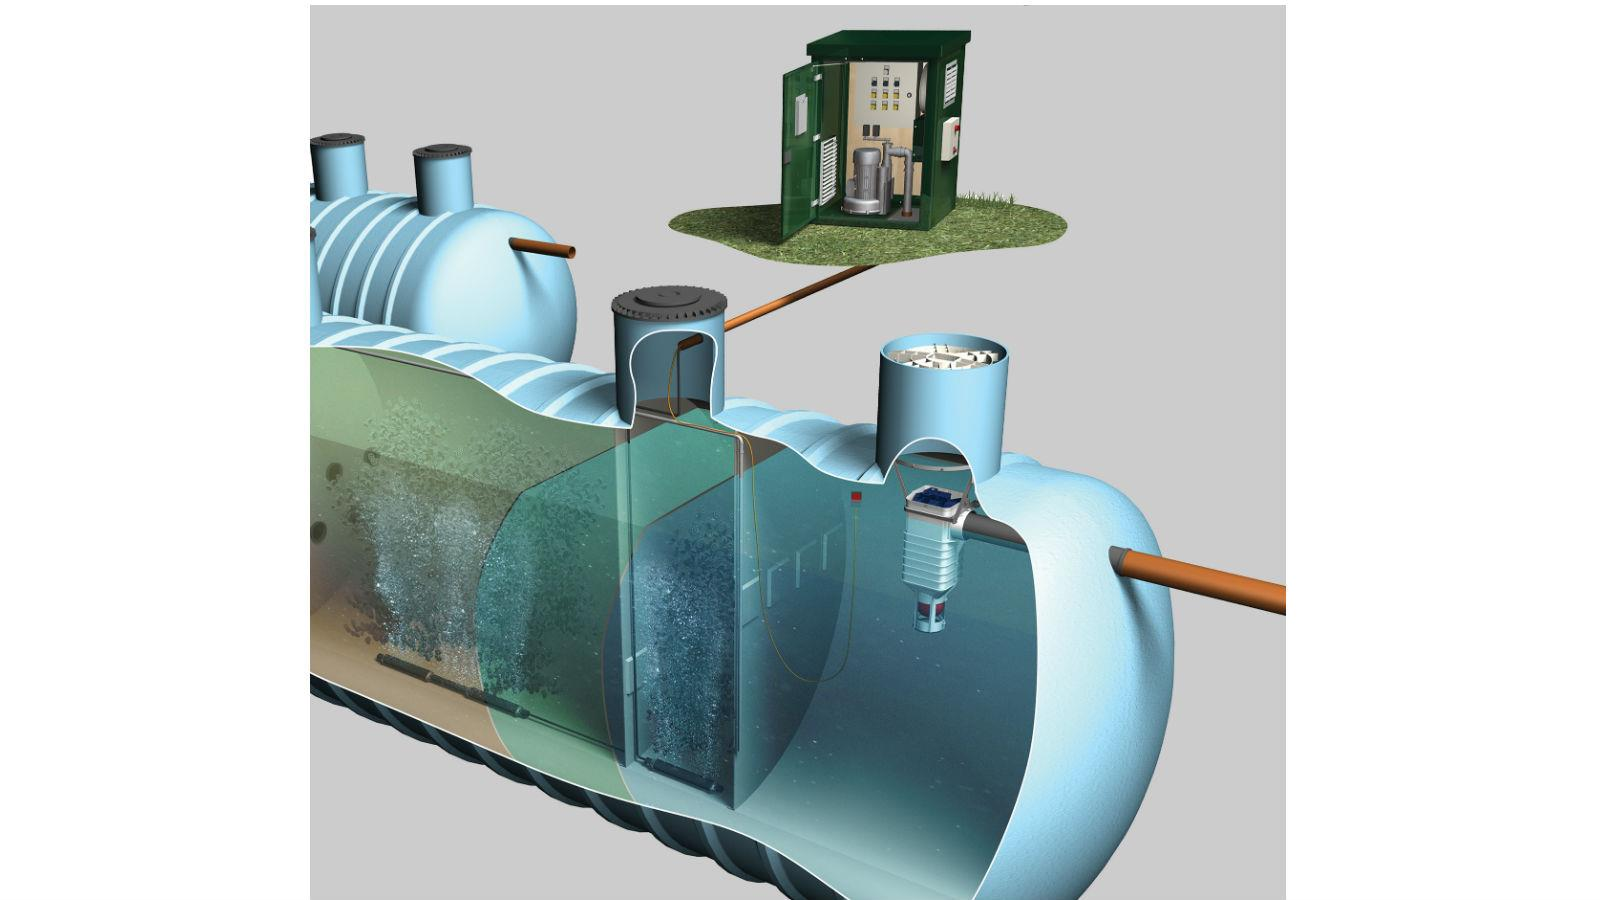 New eco-friendly sewage plant processing brings cost-saving benefits to end-users. image